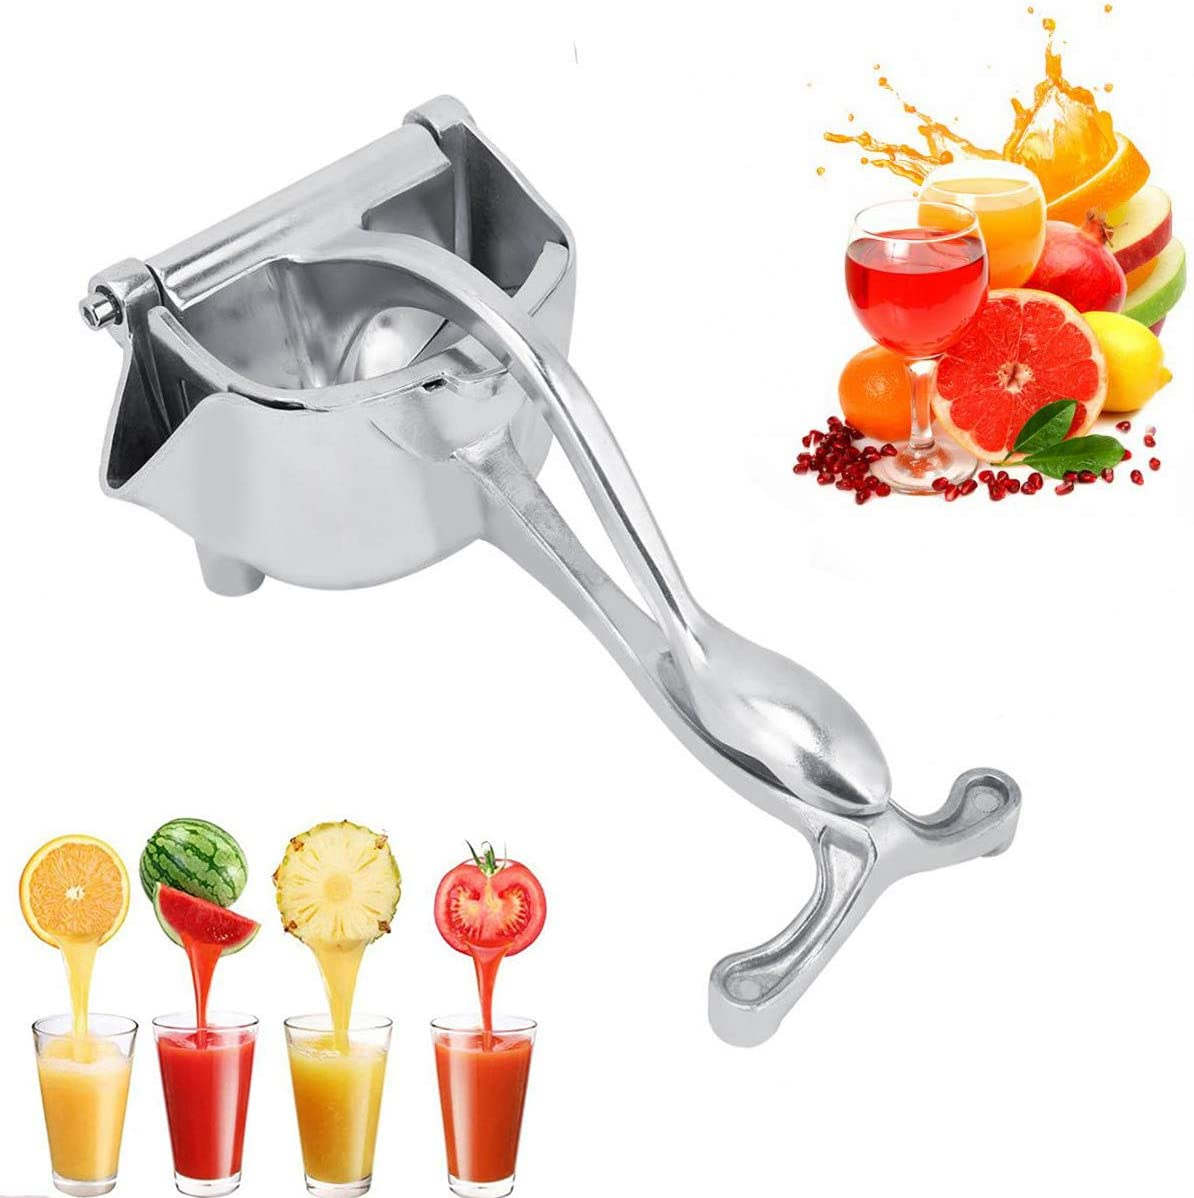 Premium Quality Stainless Steel Manual Juicer,Heavy Duty Single Press Hand Squeezer,Manual Fruit Press Squeezer,Household Fruit Juicer Extractor for Oranges/Watermelon/Lemon/Apple